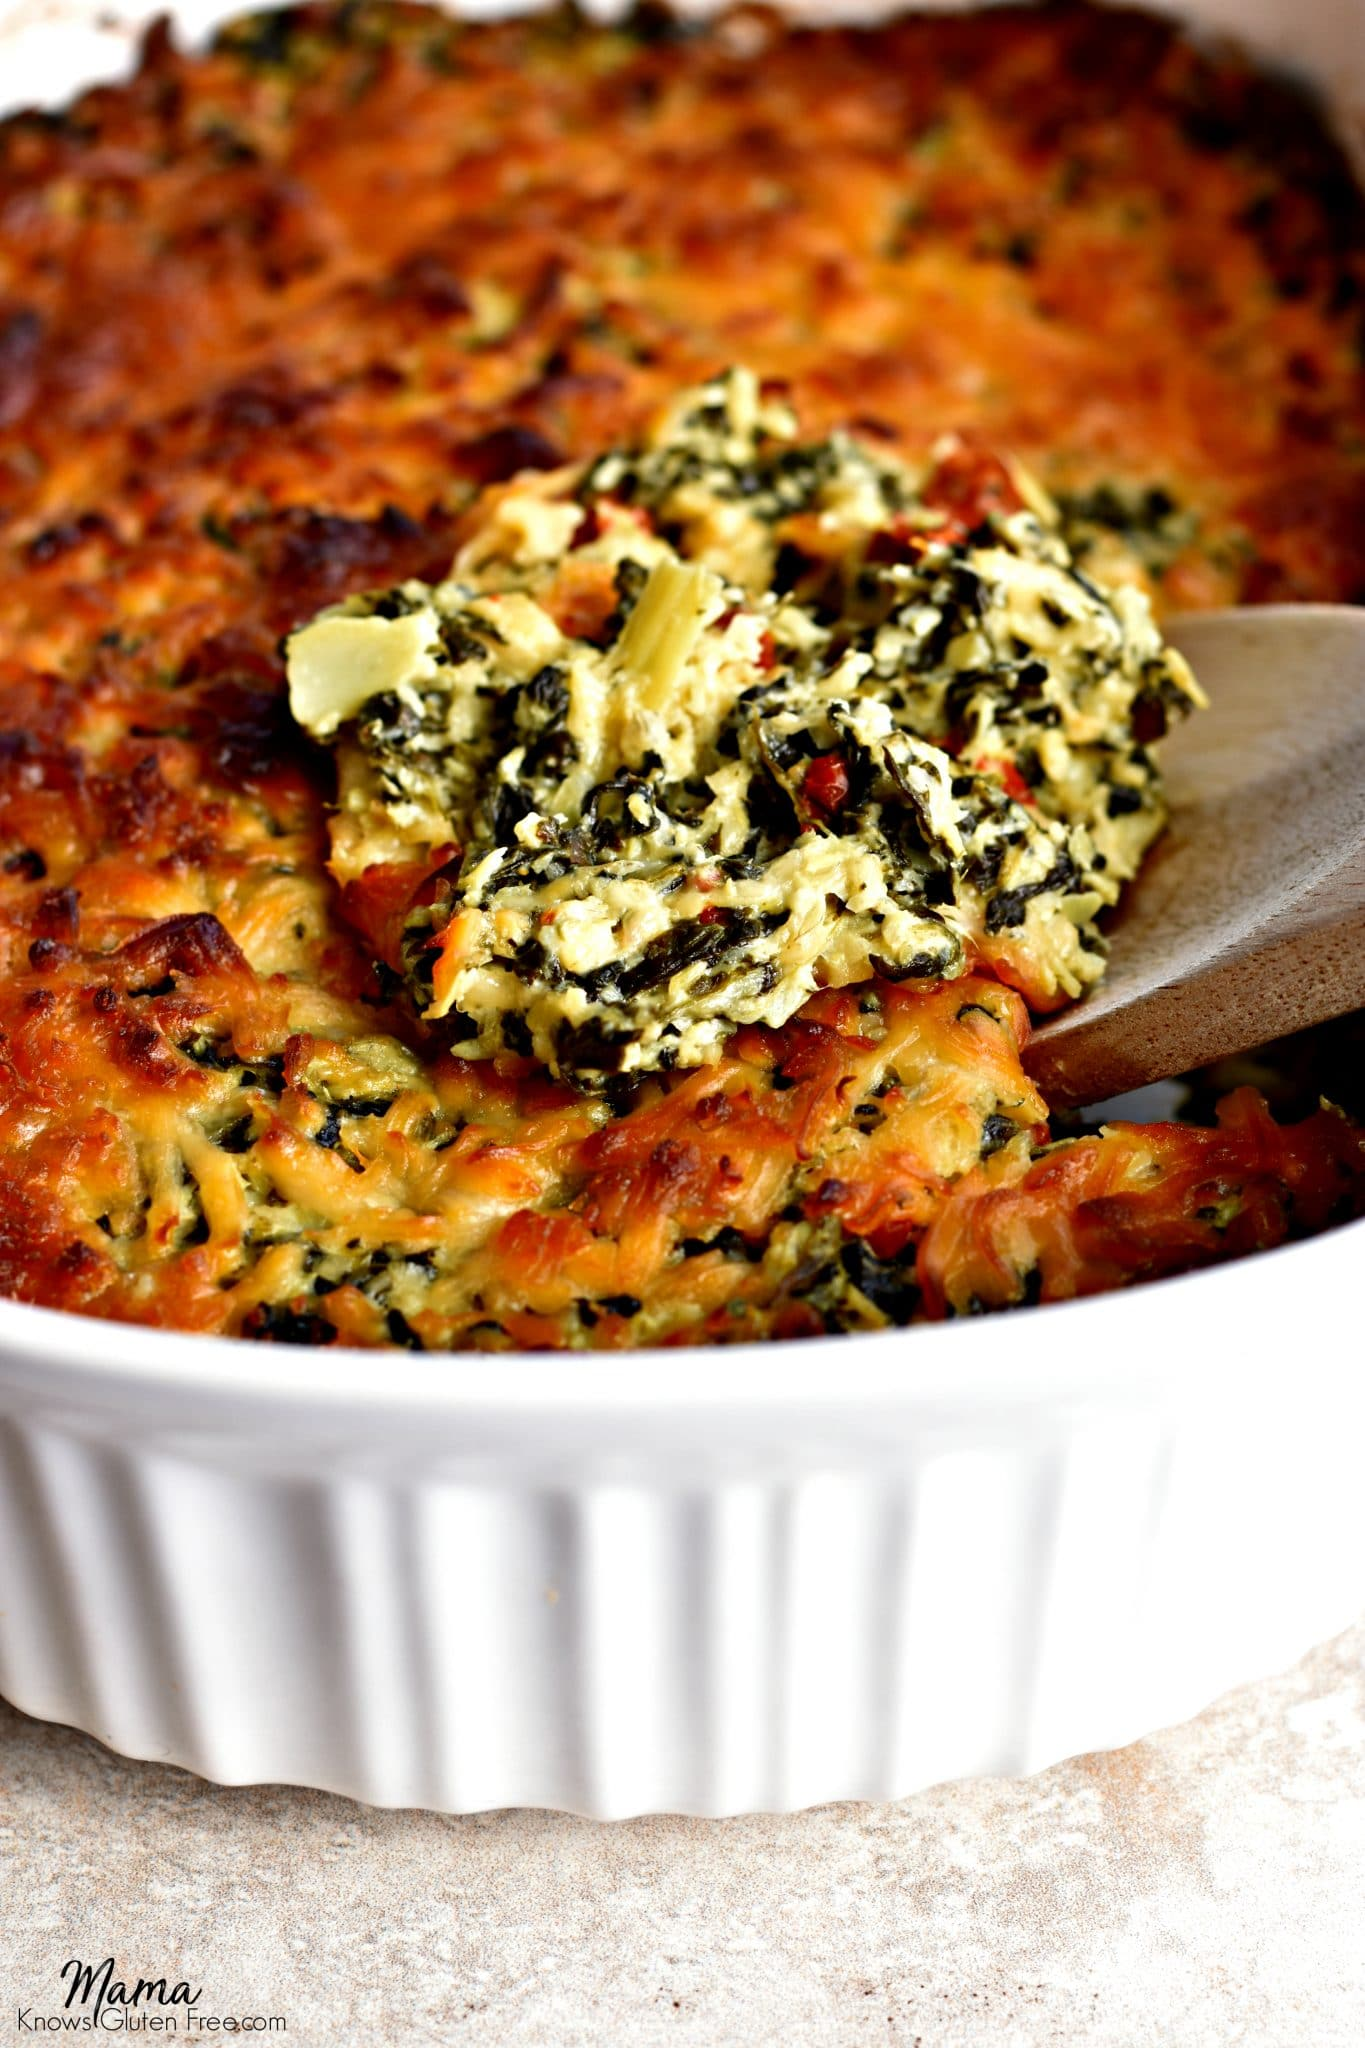 Gluten-Free Hot Spinach Artichoke Sun-Dried Tomato Dip in a casserole dish with a wooden spoon dishing out a serving.